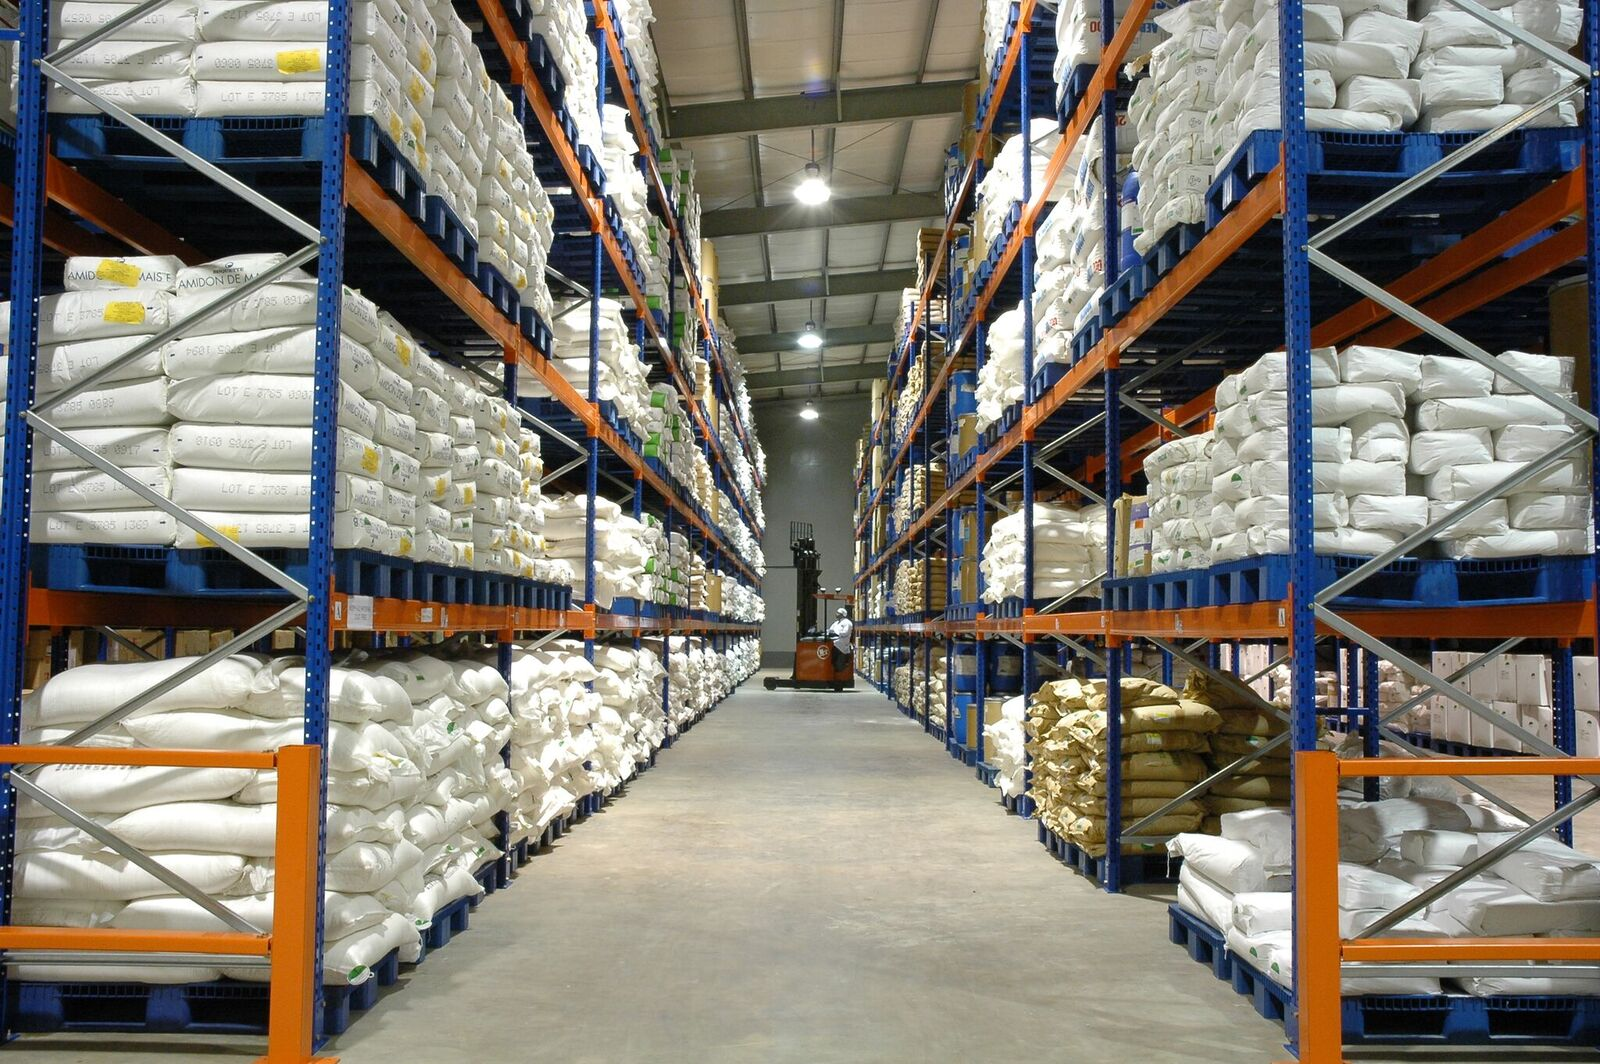 Beximco pharma warehouse. Assets for distribution?